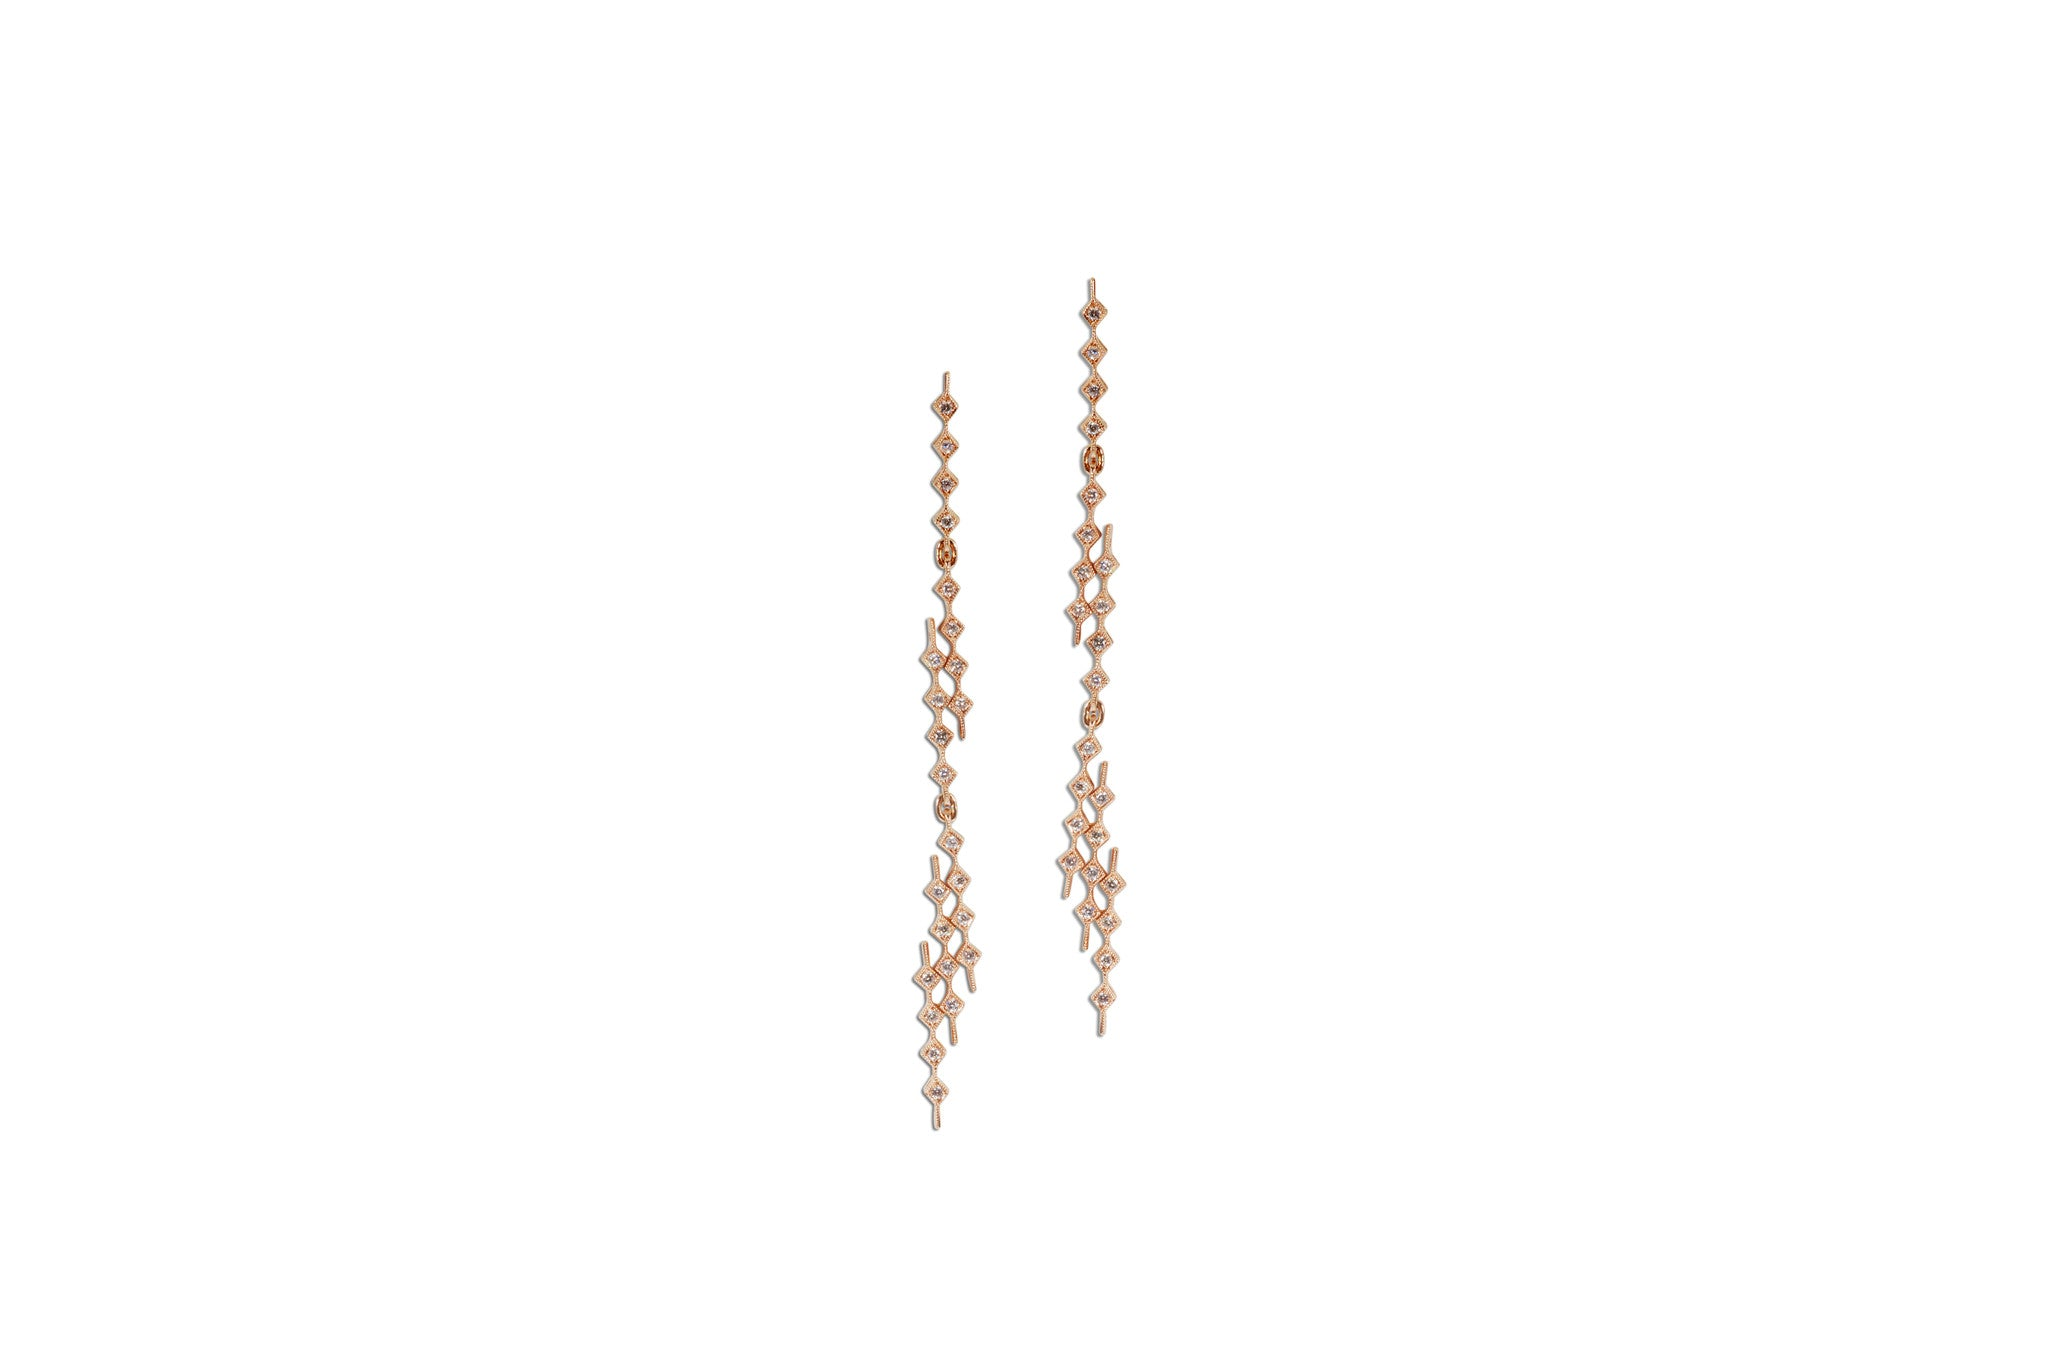 Talisman: Constellation 3-2-1 Rose Gold Diamond Earrings [as seen on Tracee Ellis Ross]